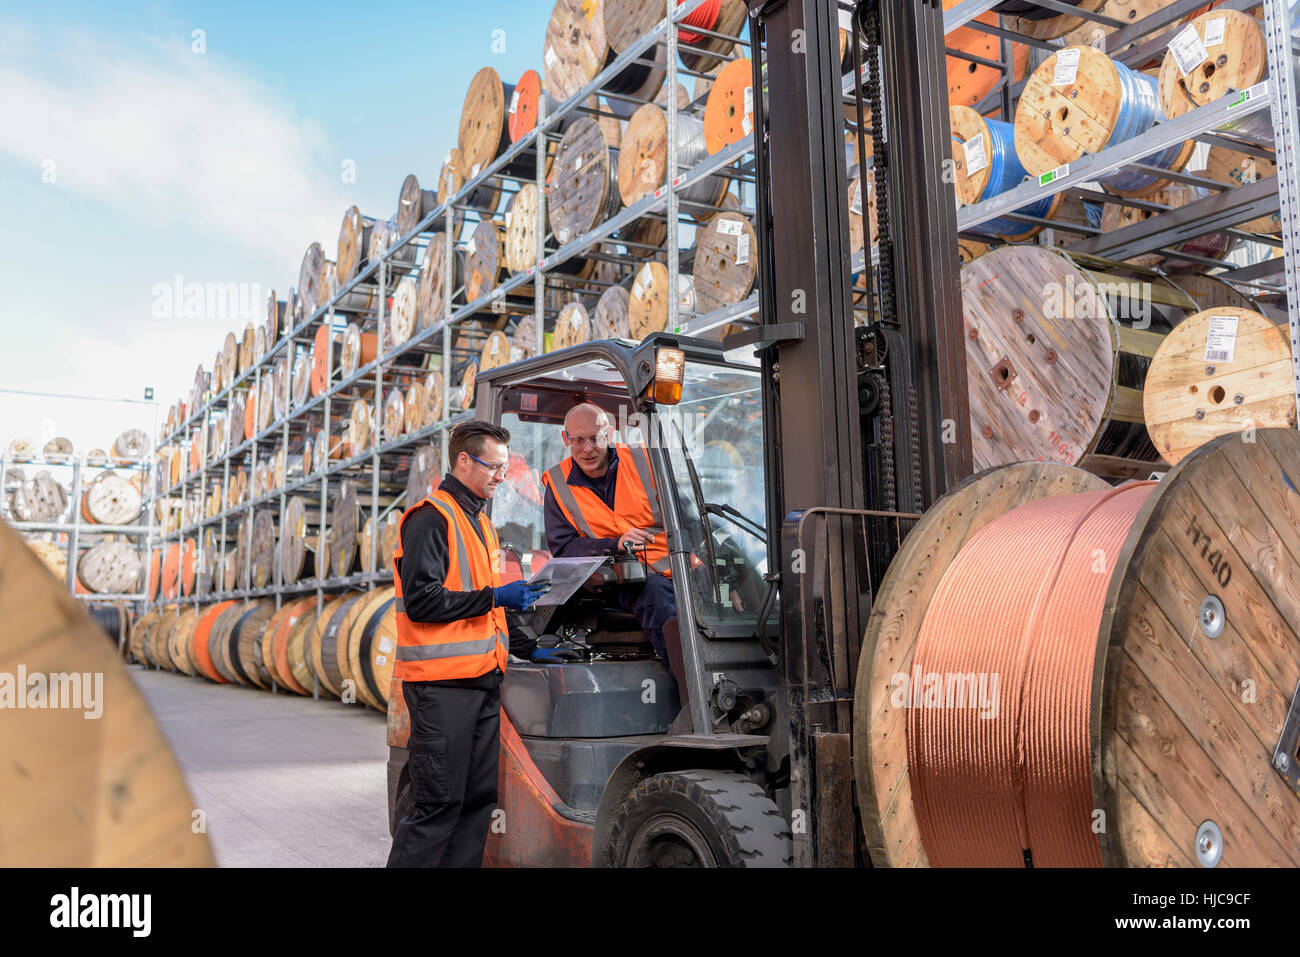 Workers with fork lift truck at cable storage facility - Stock Image